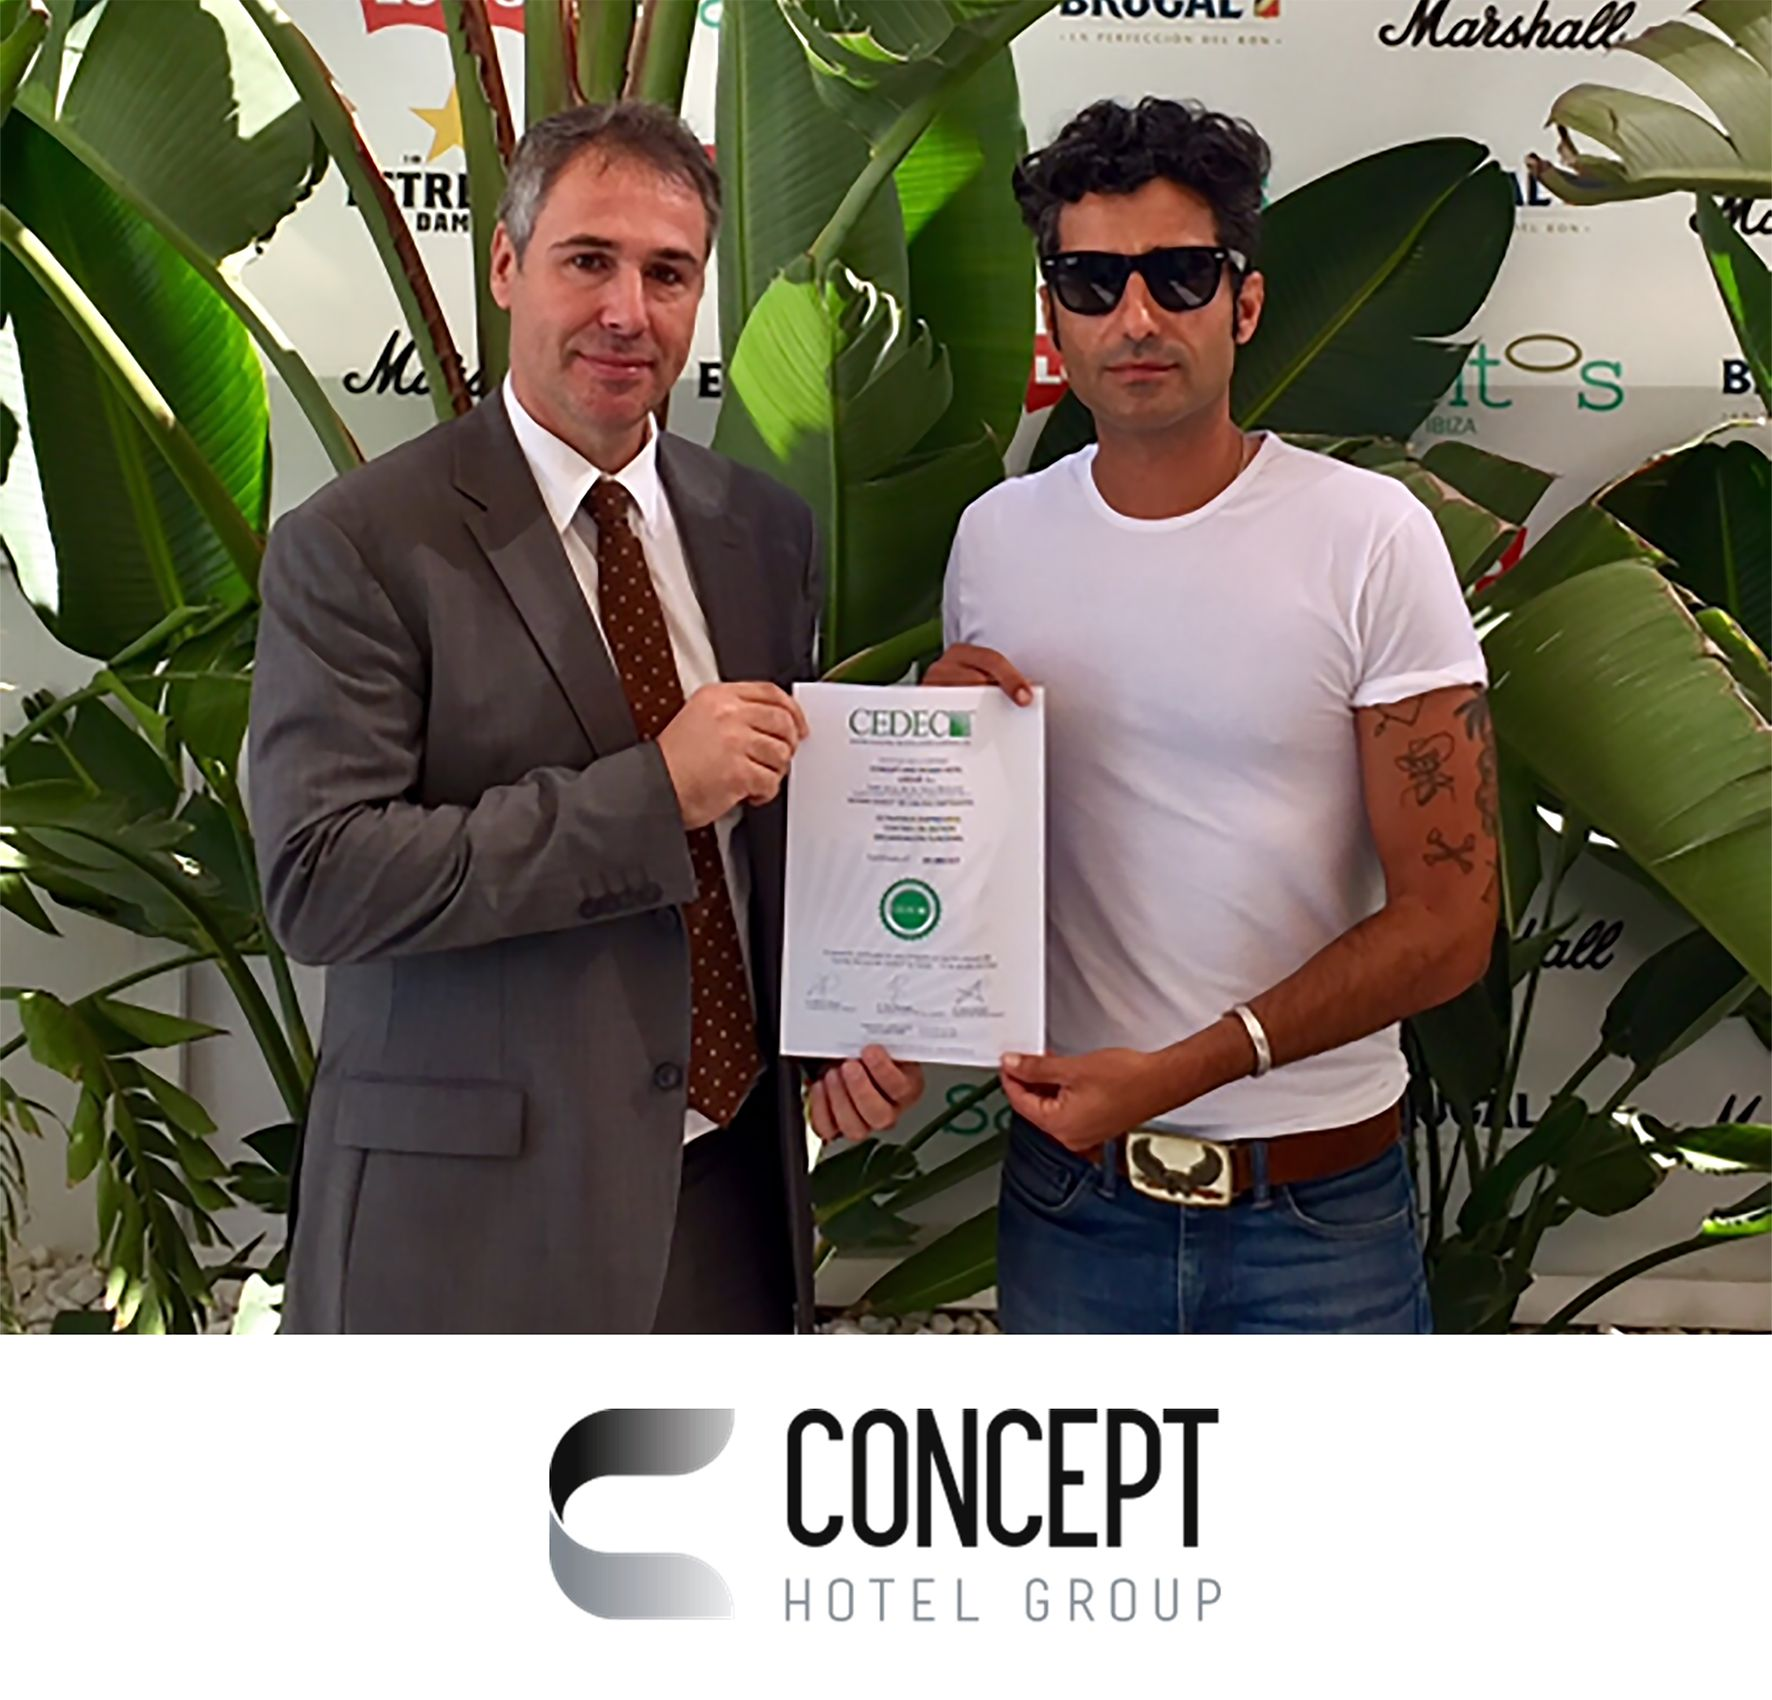 Concept and Design Hotel Group obtiene el sello de norma de calidad empresarial de CEDEC